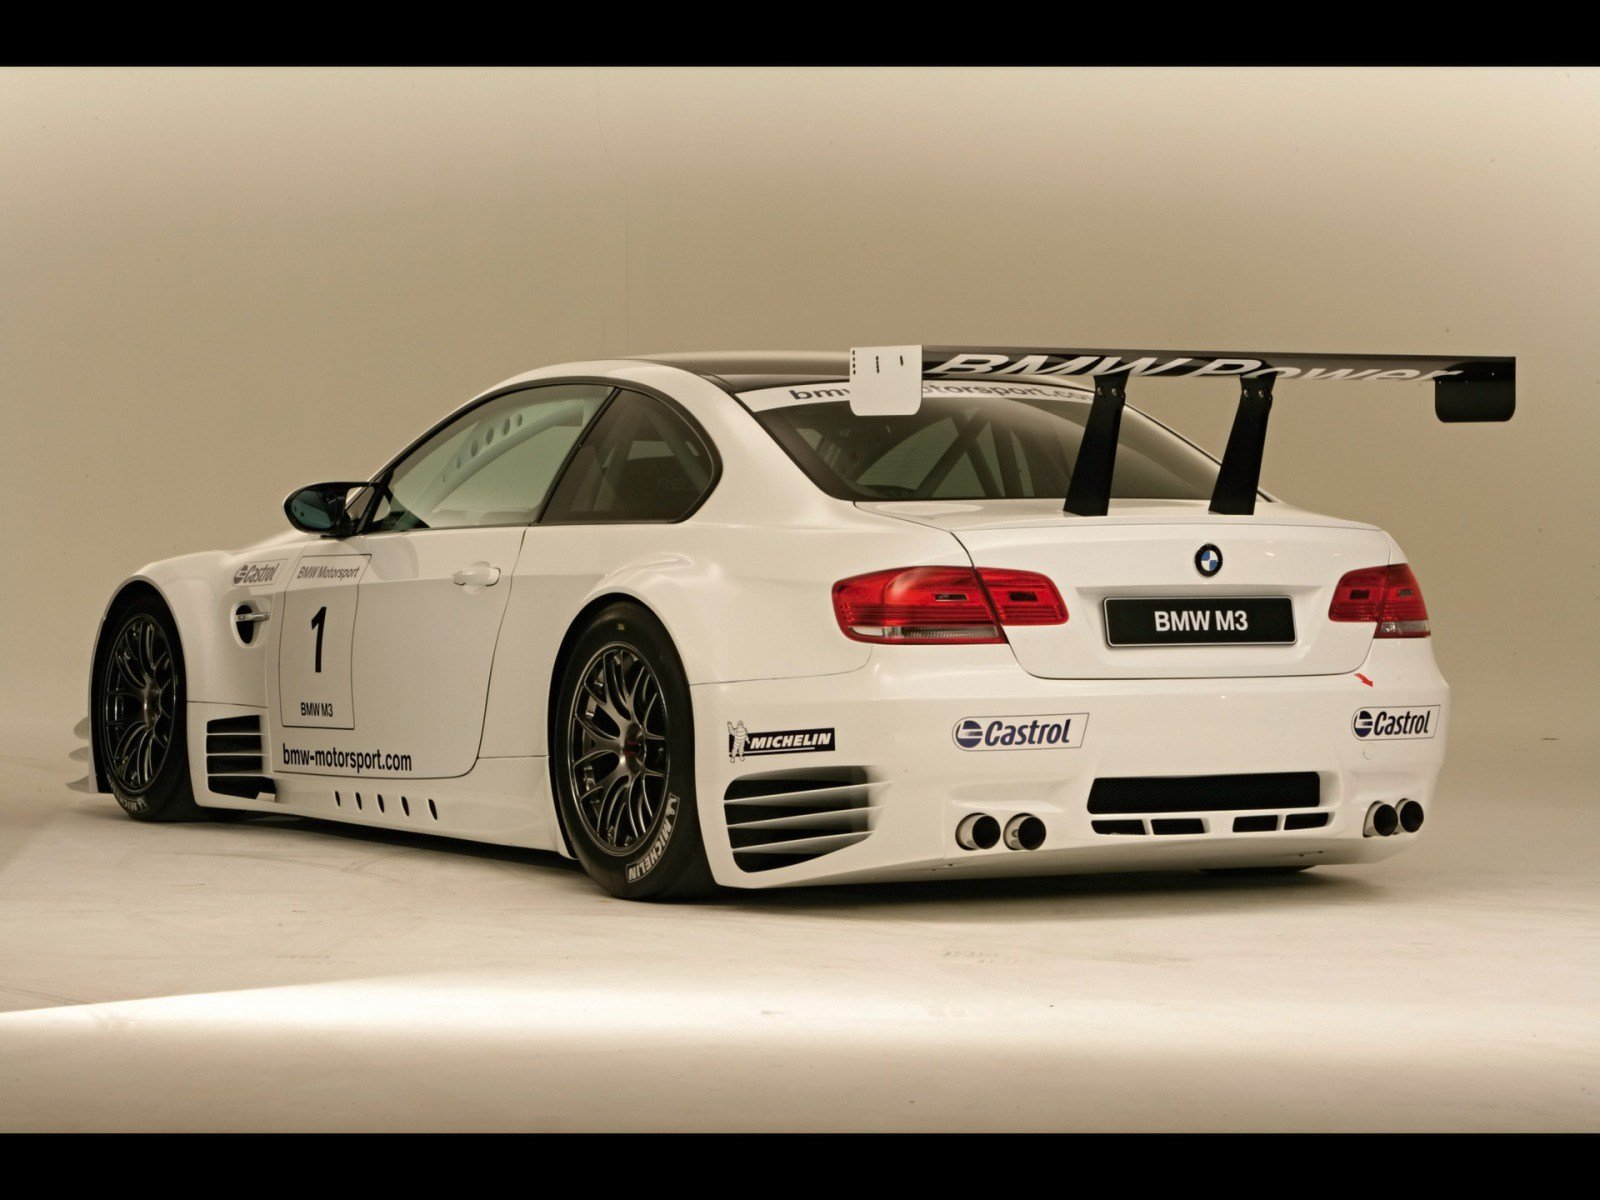 Latest Bmw M3 Race Car Wallpaper Bmw Cars Wallpapers In Jpg Free Download